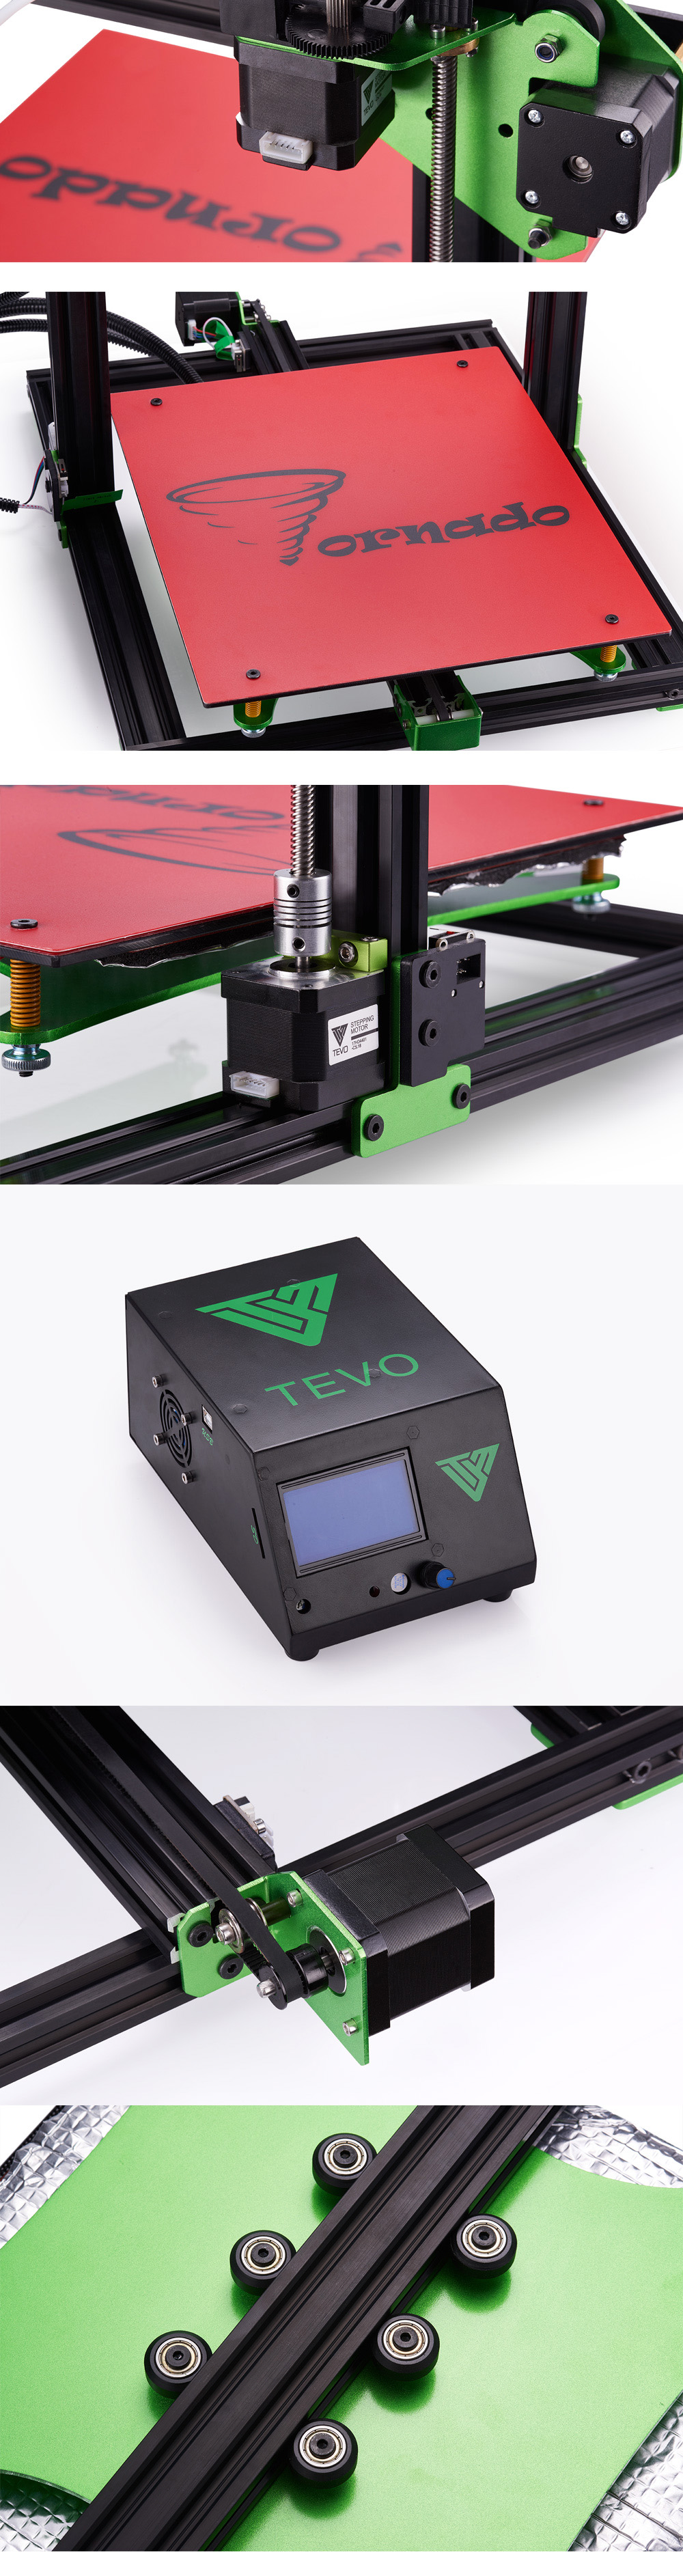 TEVO Tornado Semi DIY 3D Printer